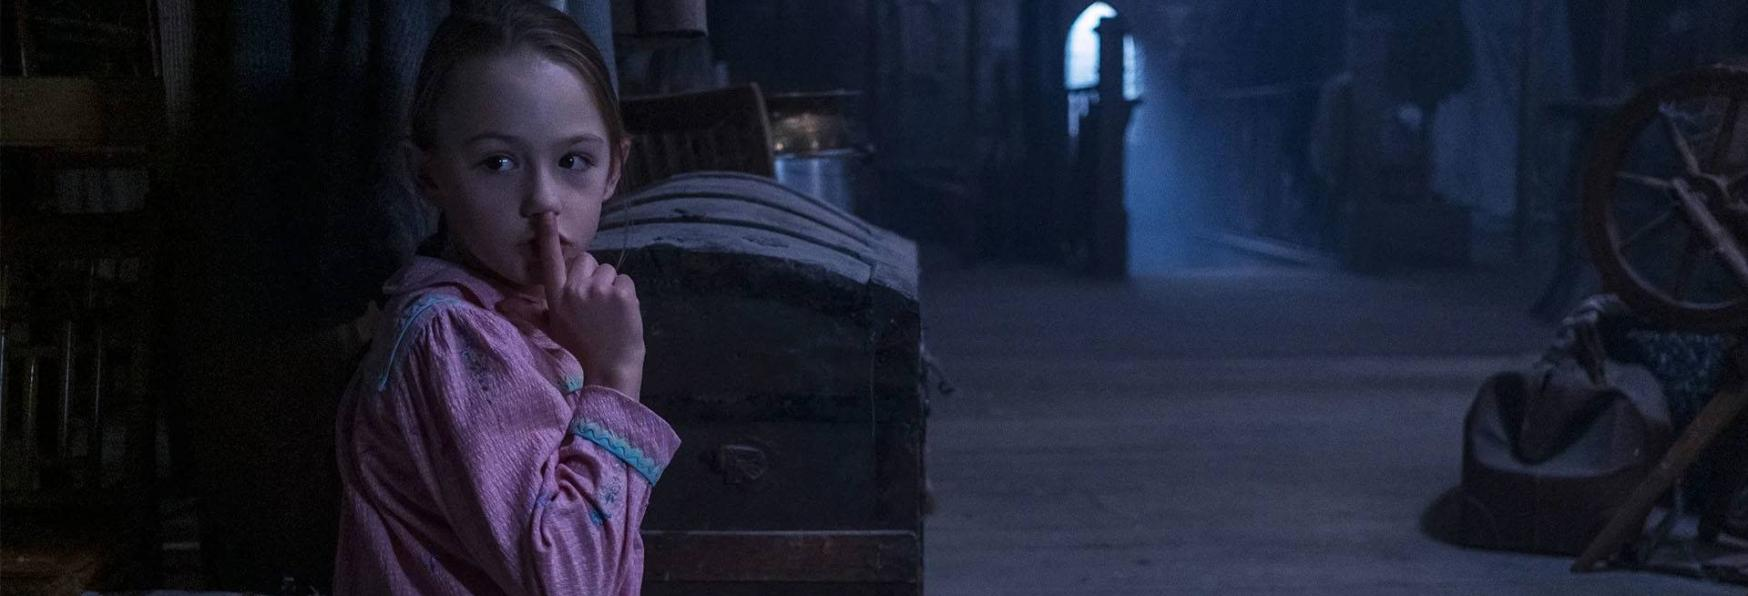 The Best of 2020, le Migliori Serie TV dell'Anno secondo Mad for Series: The Haunting of Bly Manor